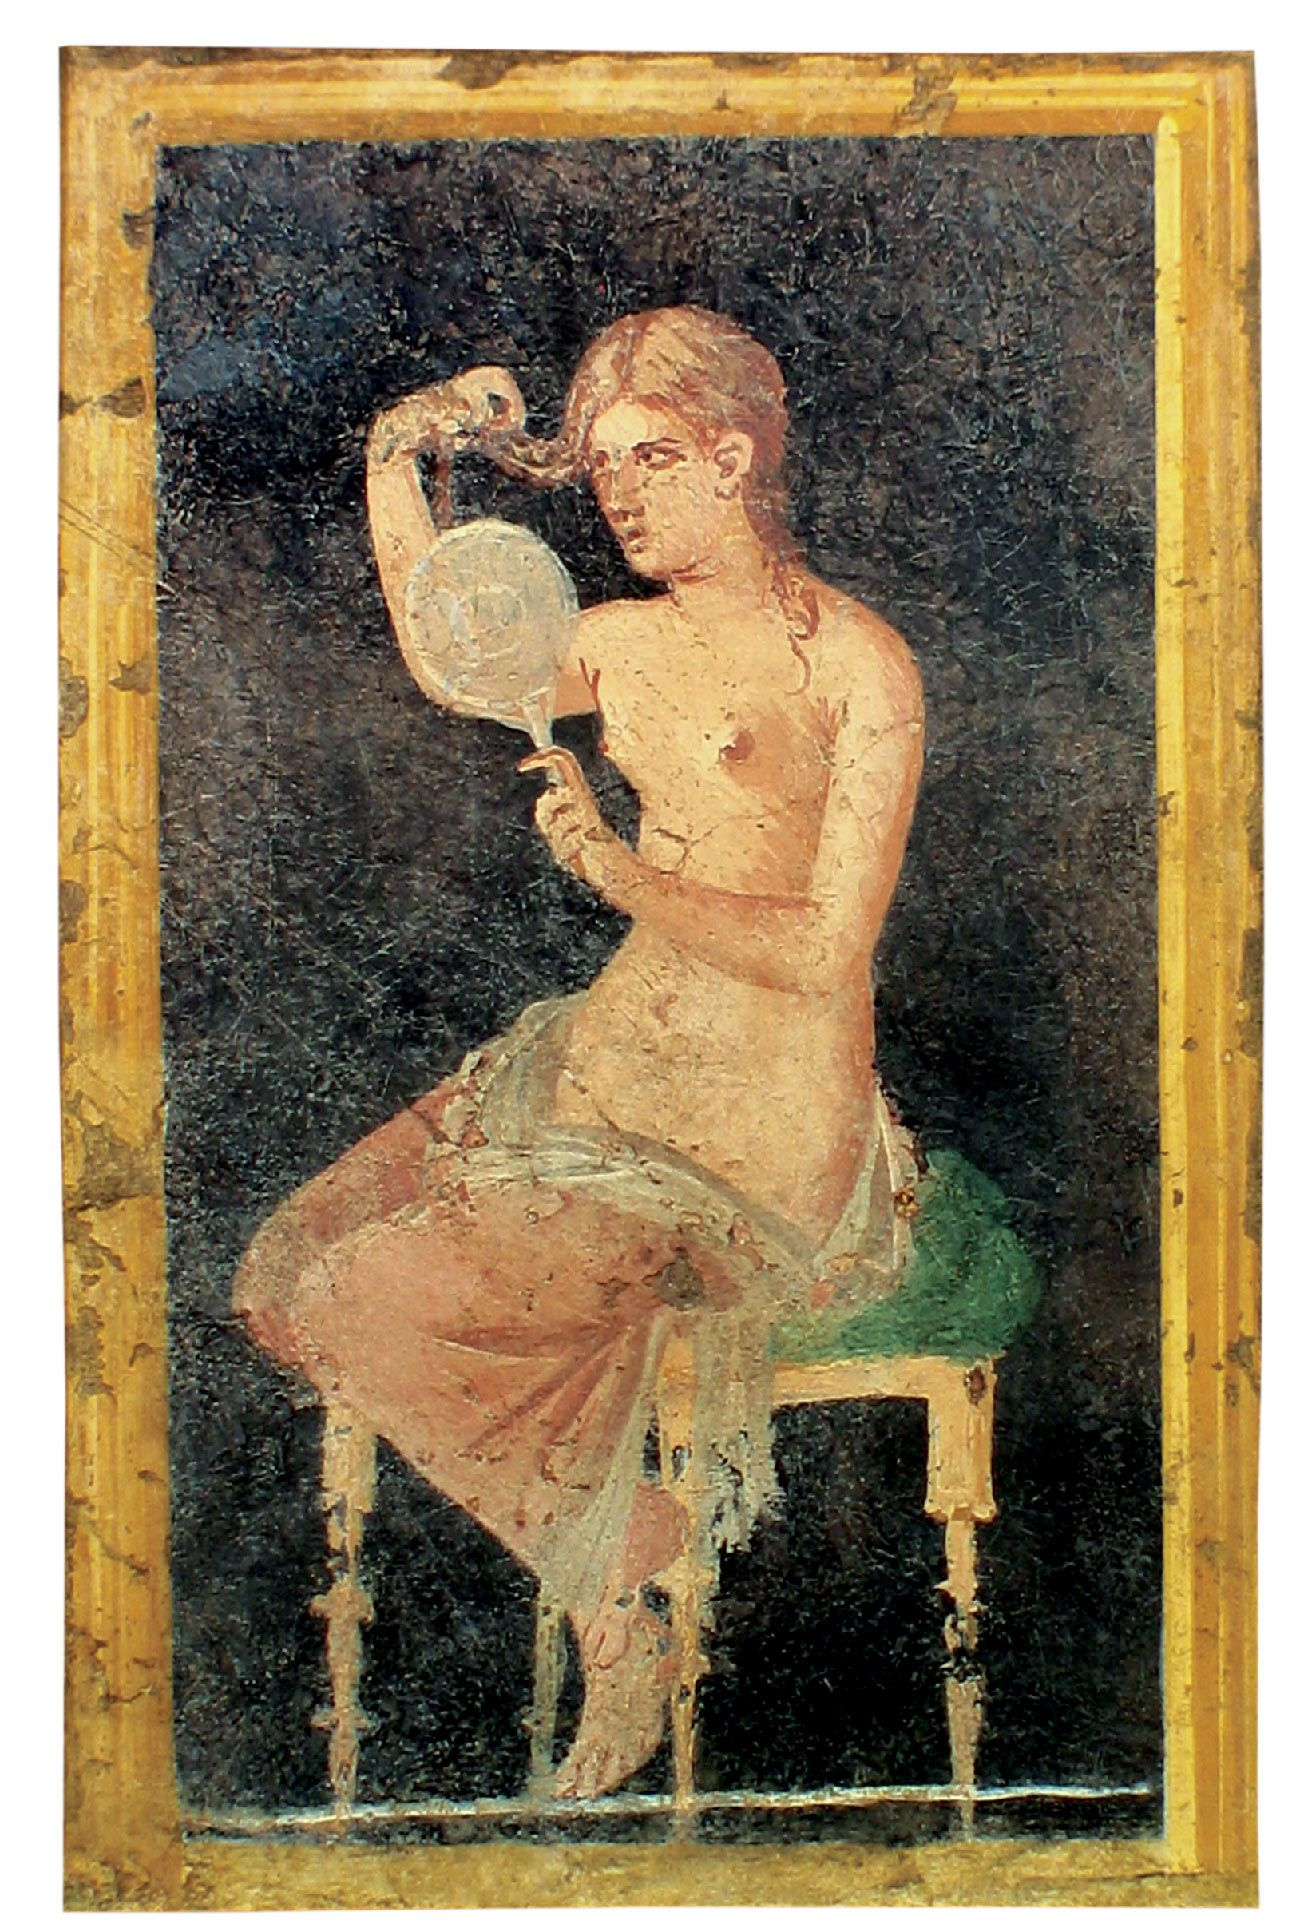 Fresco of a woman attending to her hair, Painted plaster, Stabiae, triclinium, Villa Arianna, Museo Archeologico Nazionale di Napoli (MANN)